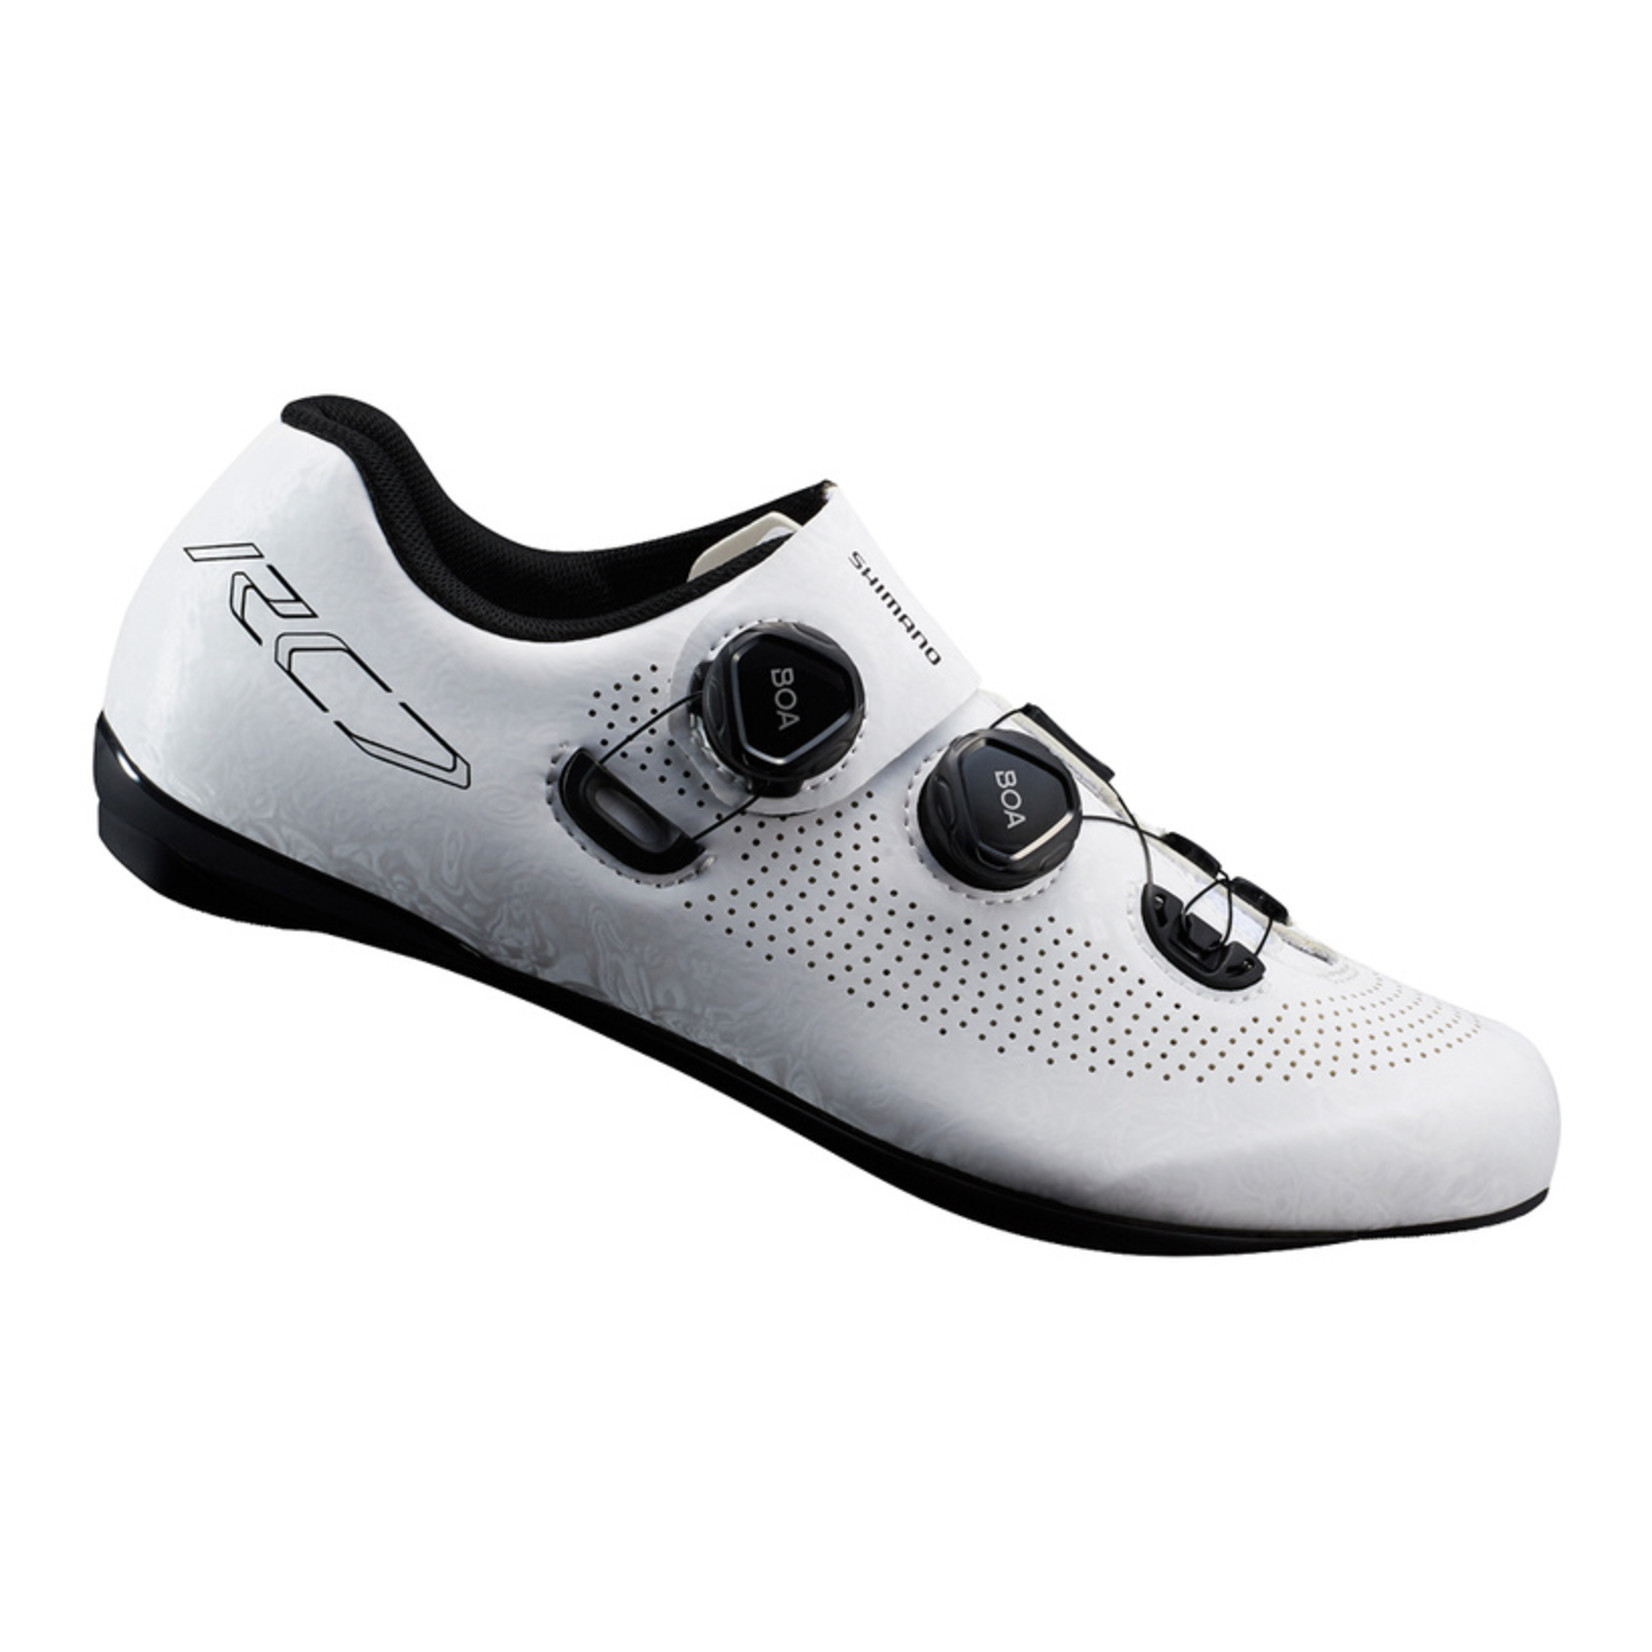 Shimano RC7 Cycling Shoe